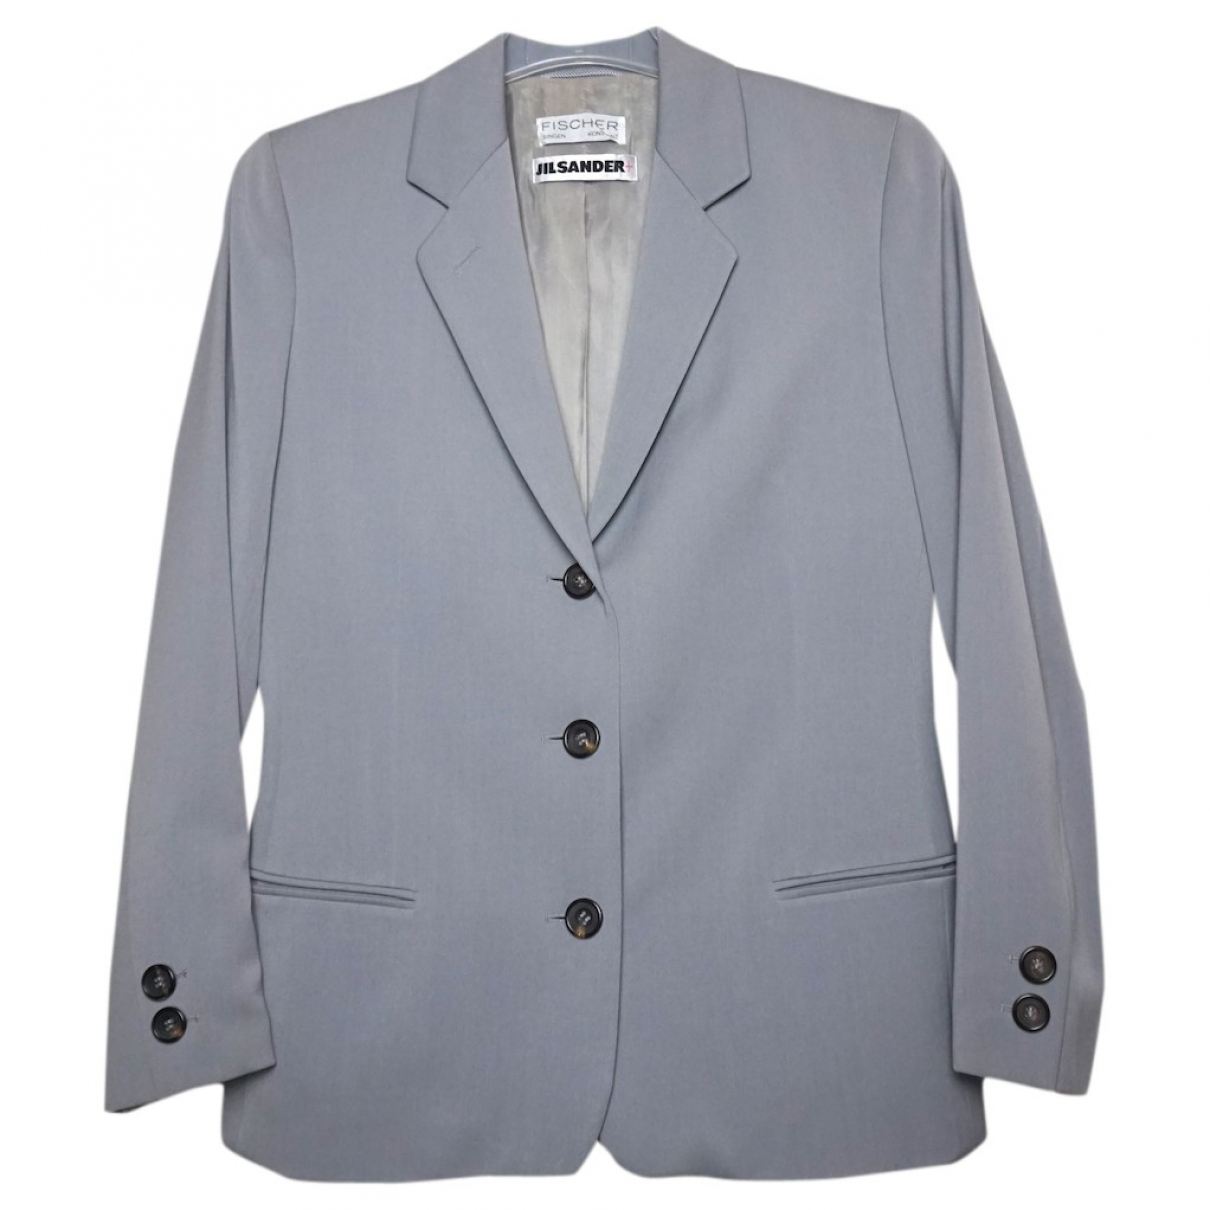 Jil Sander \N Grey Wool jacket for Women M International